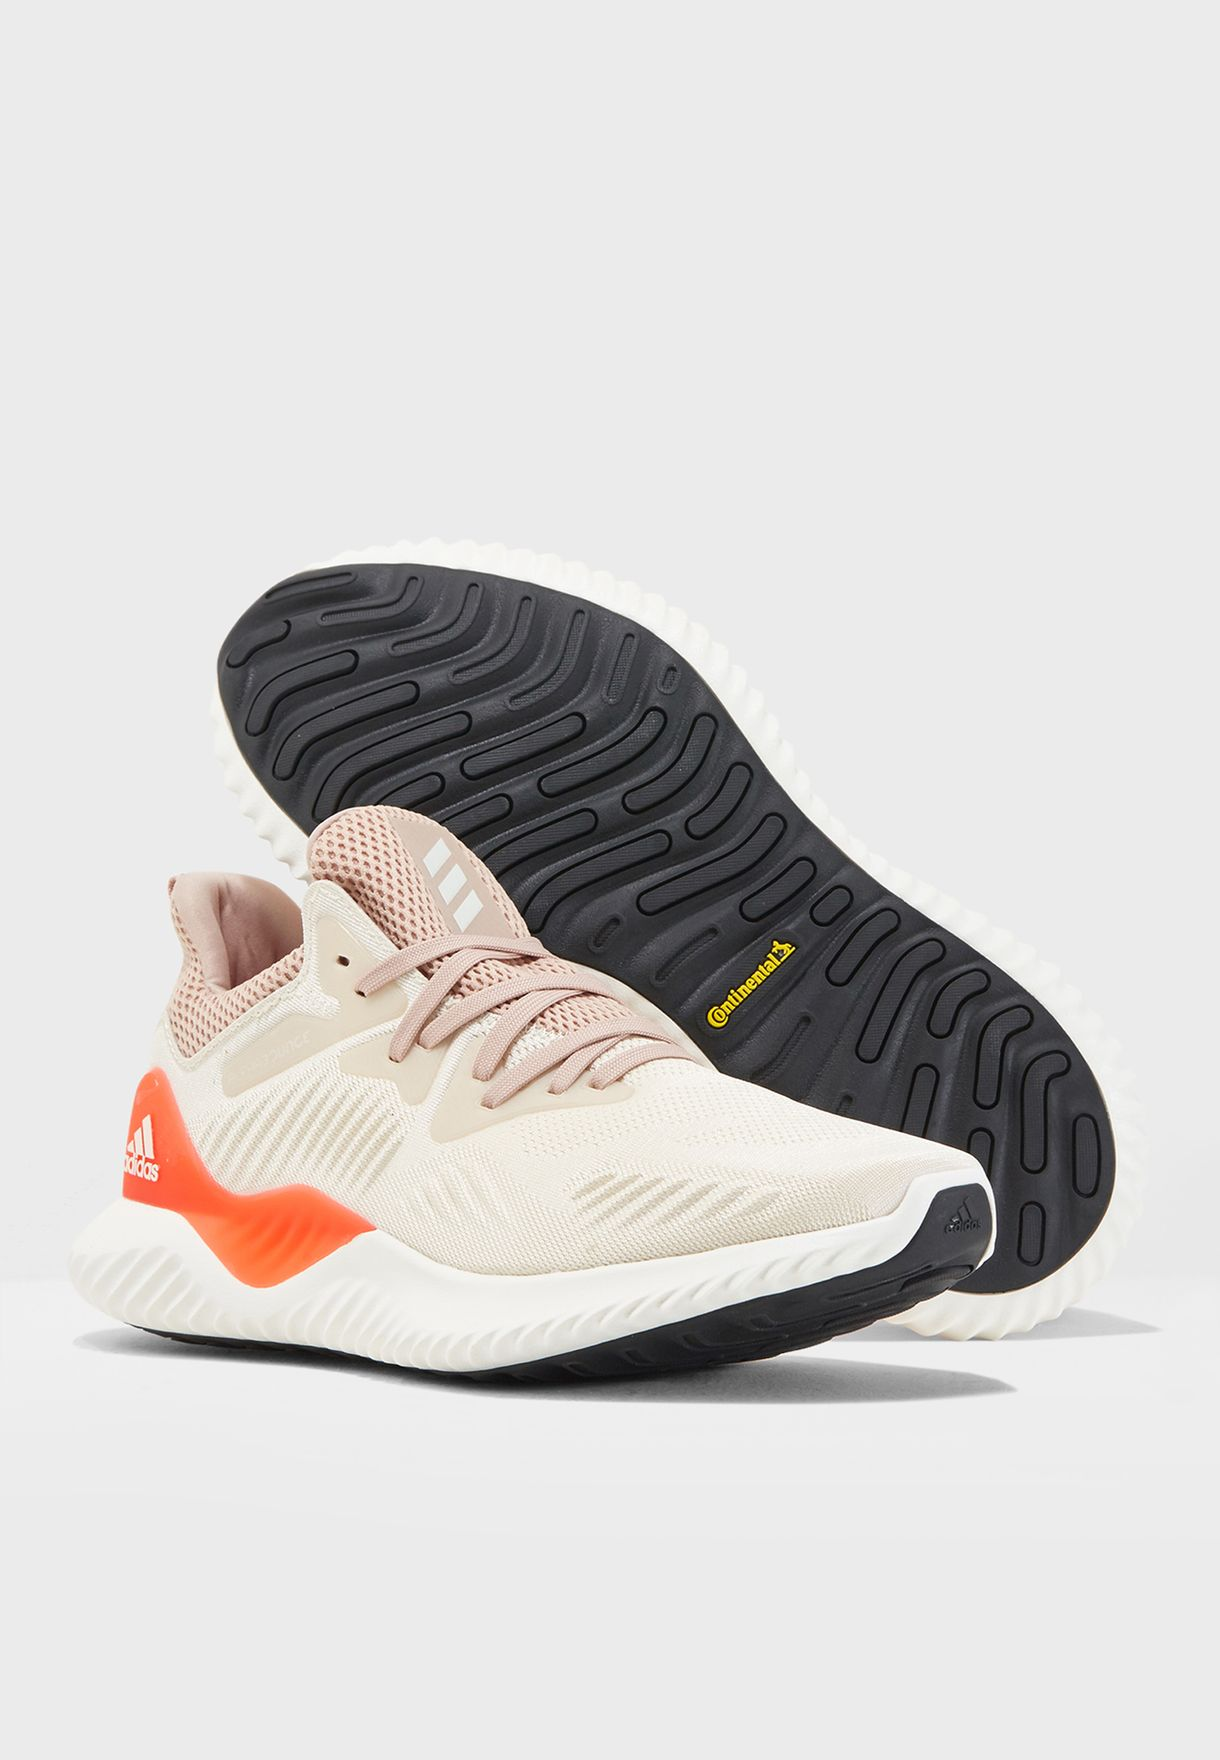 5c726c35e Shop adidas beige Alphabounce Beyond CG4763 for Men in UAE ...